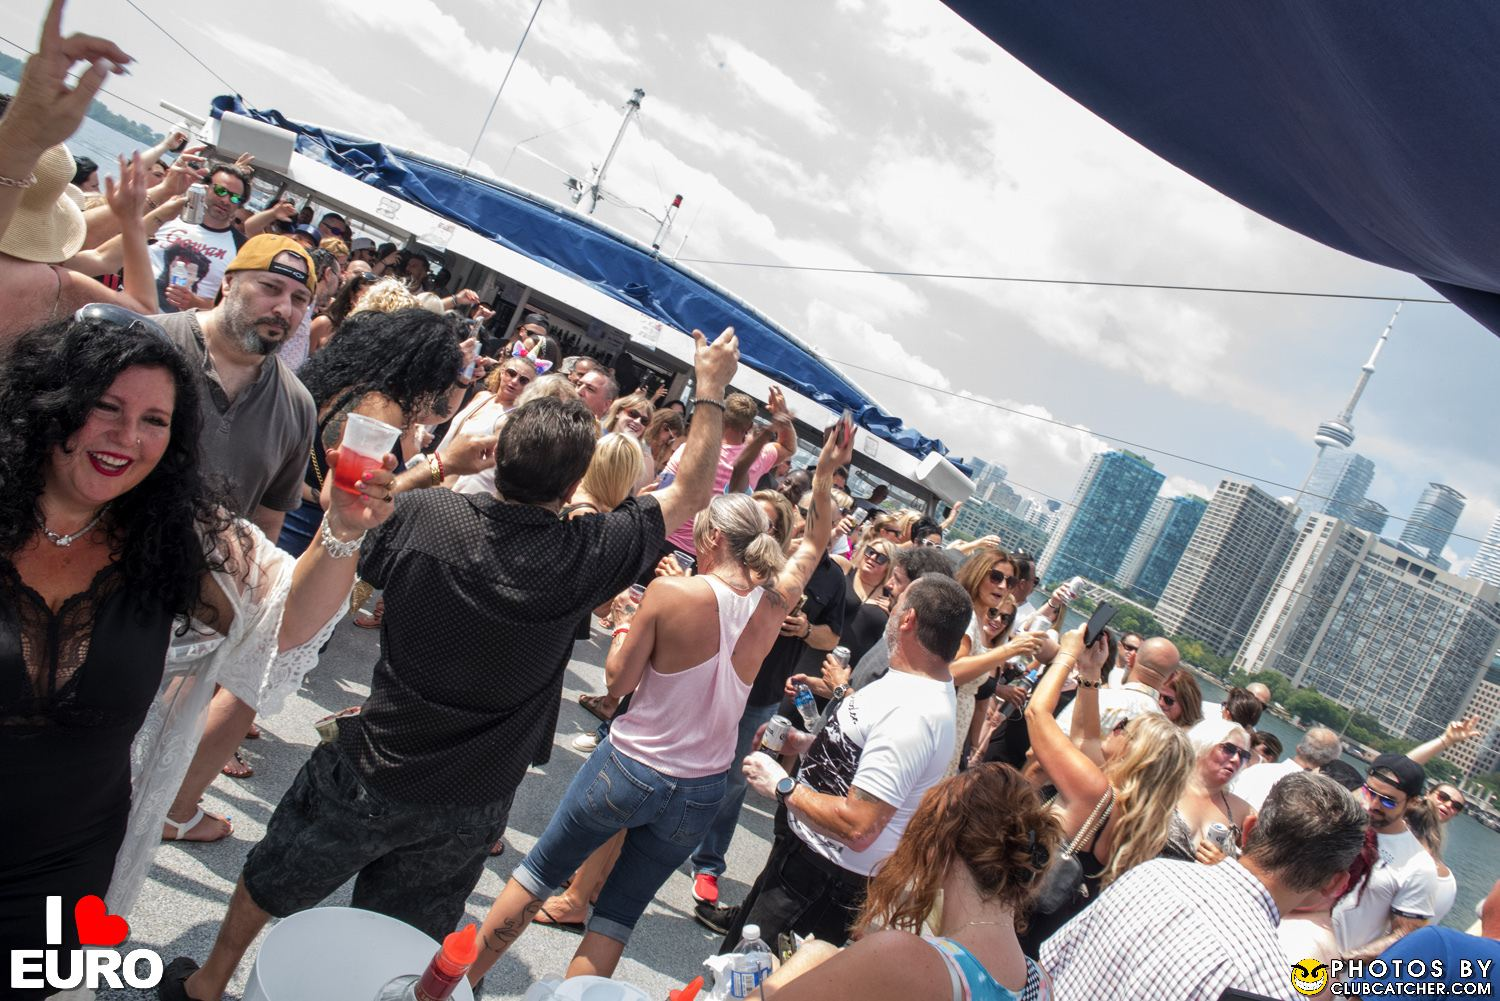 Empress Of Canada party venue photo 100 - August 22nd, 2021